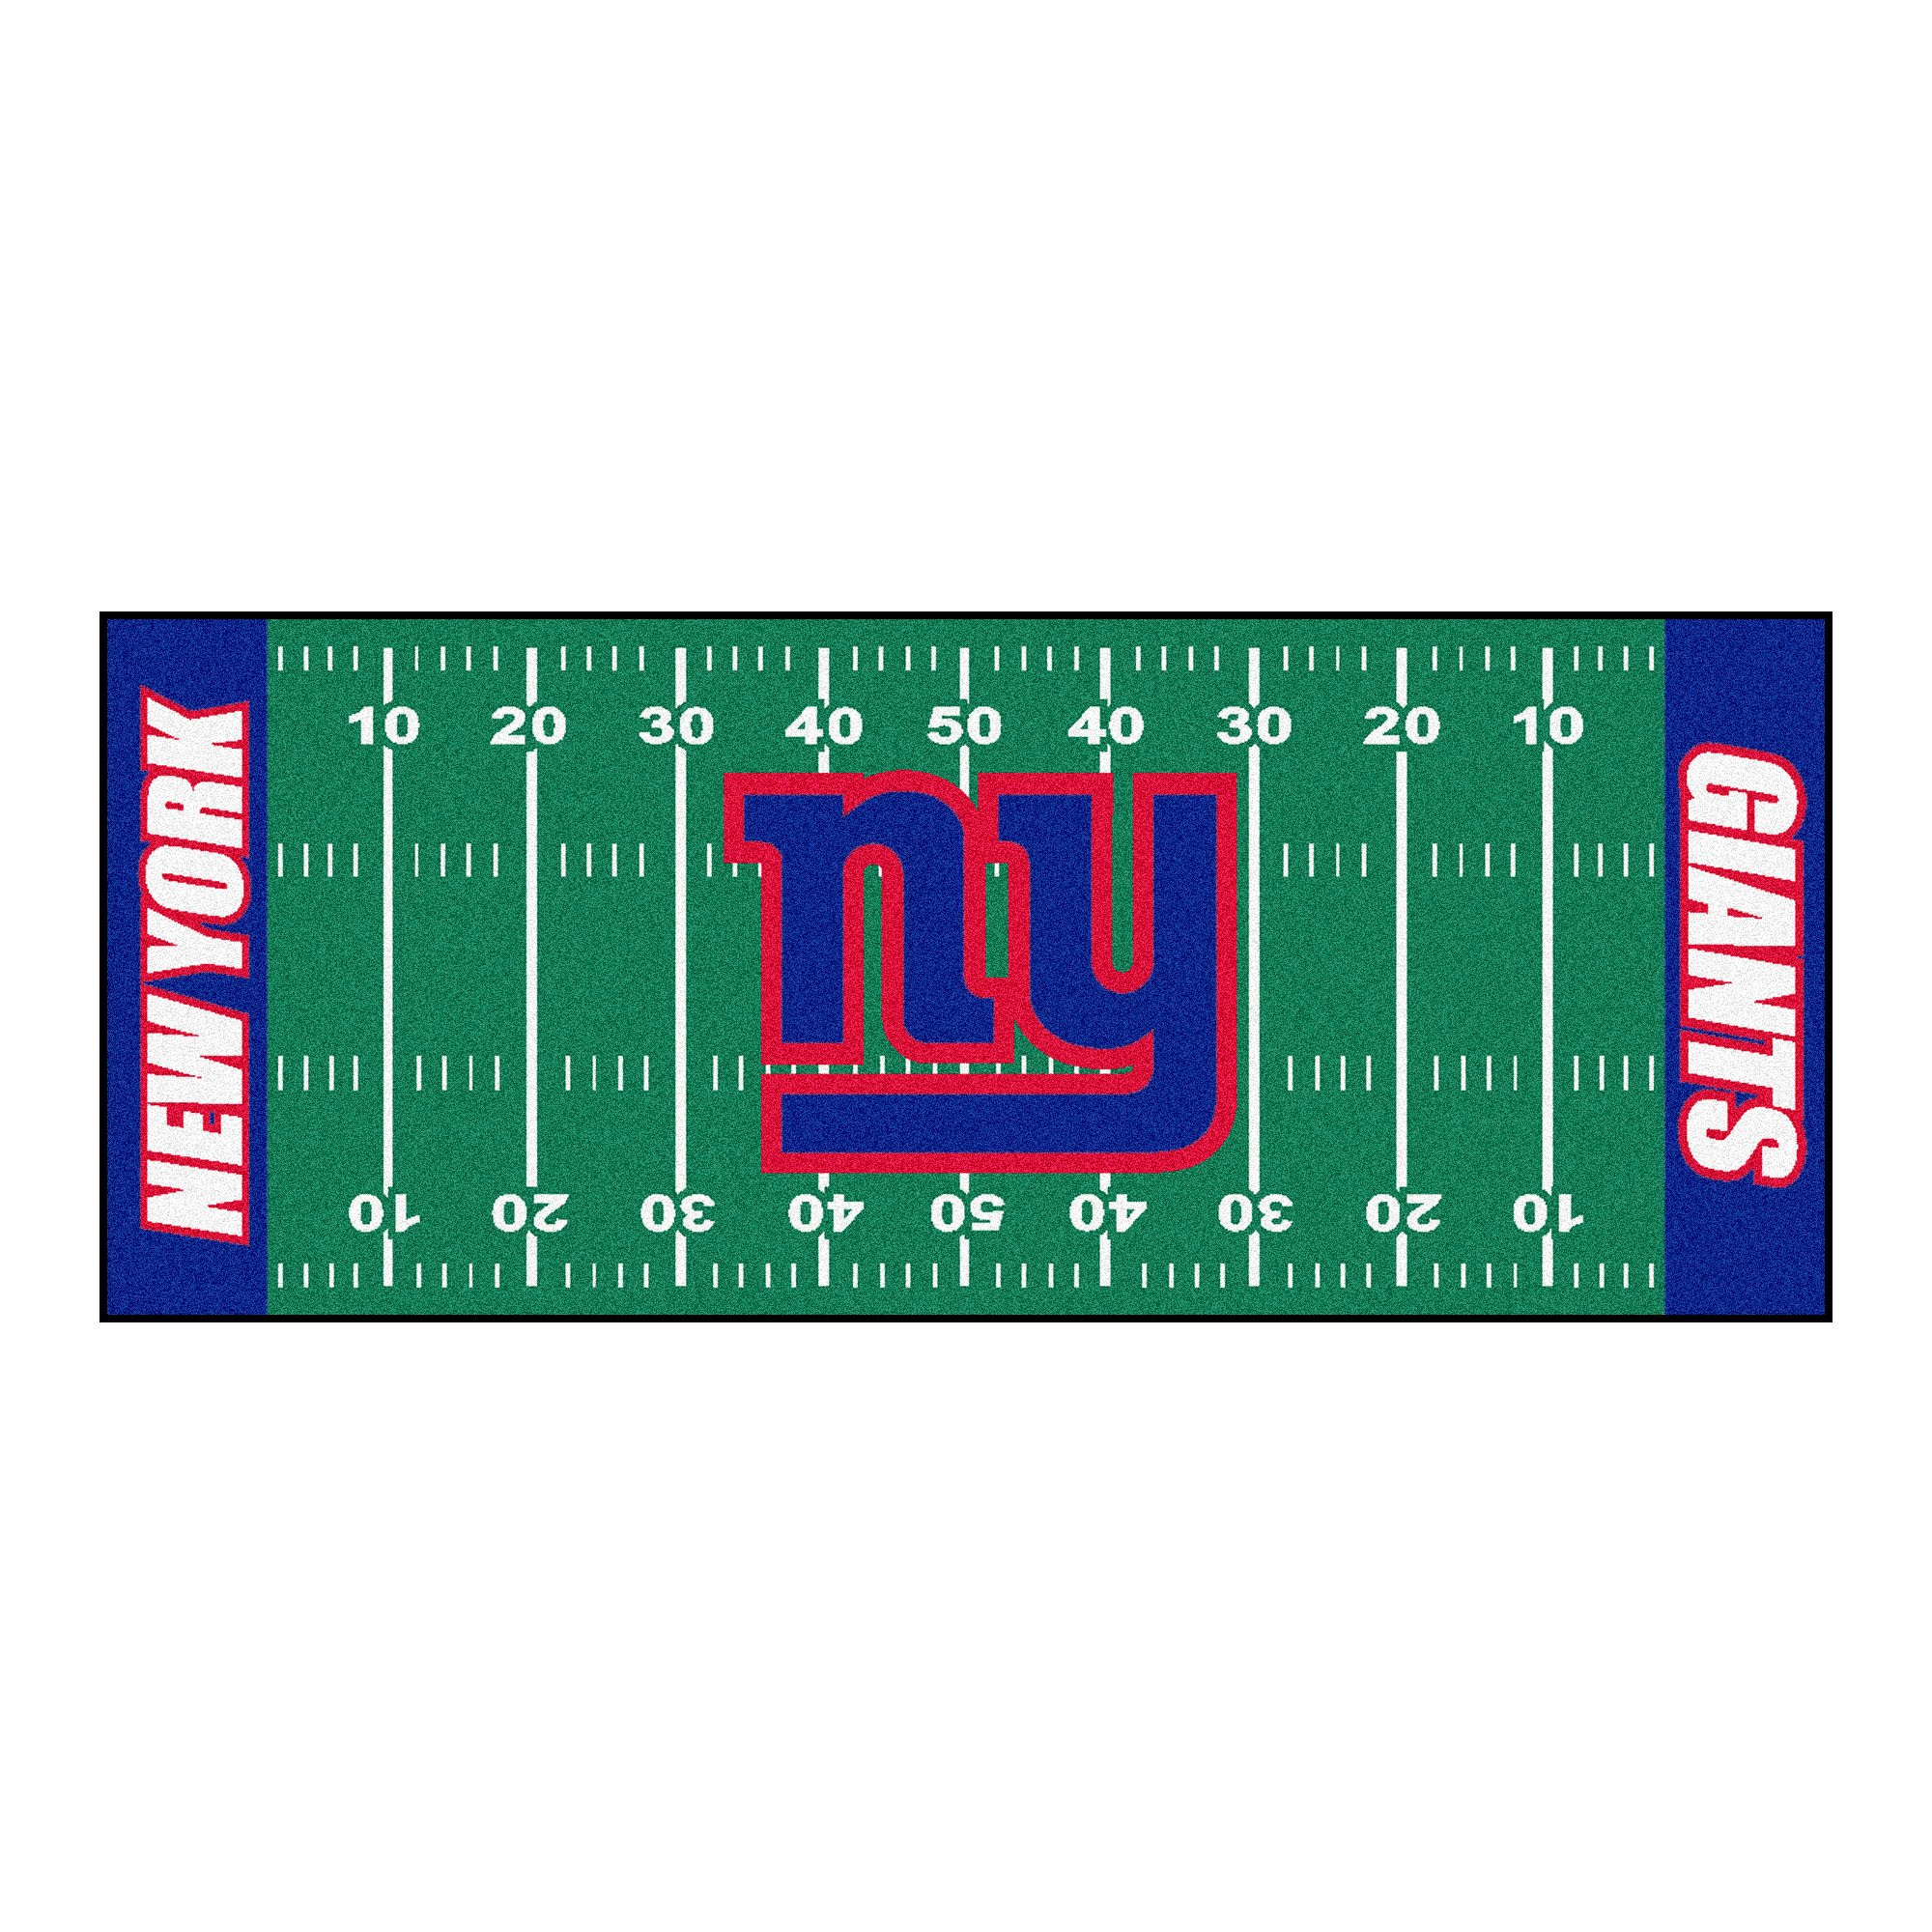 FANMATS NFL New York Giants Nylon Face Football Field Runner